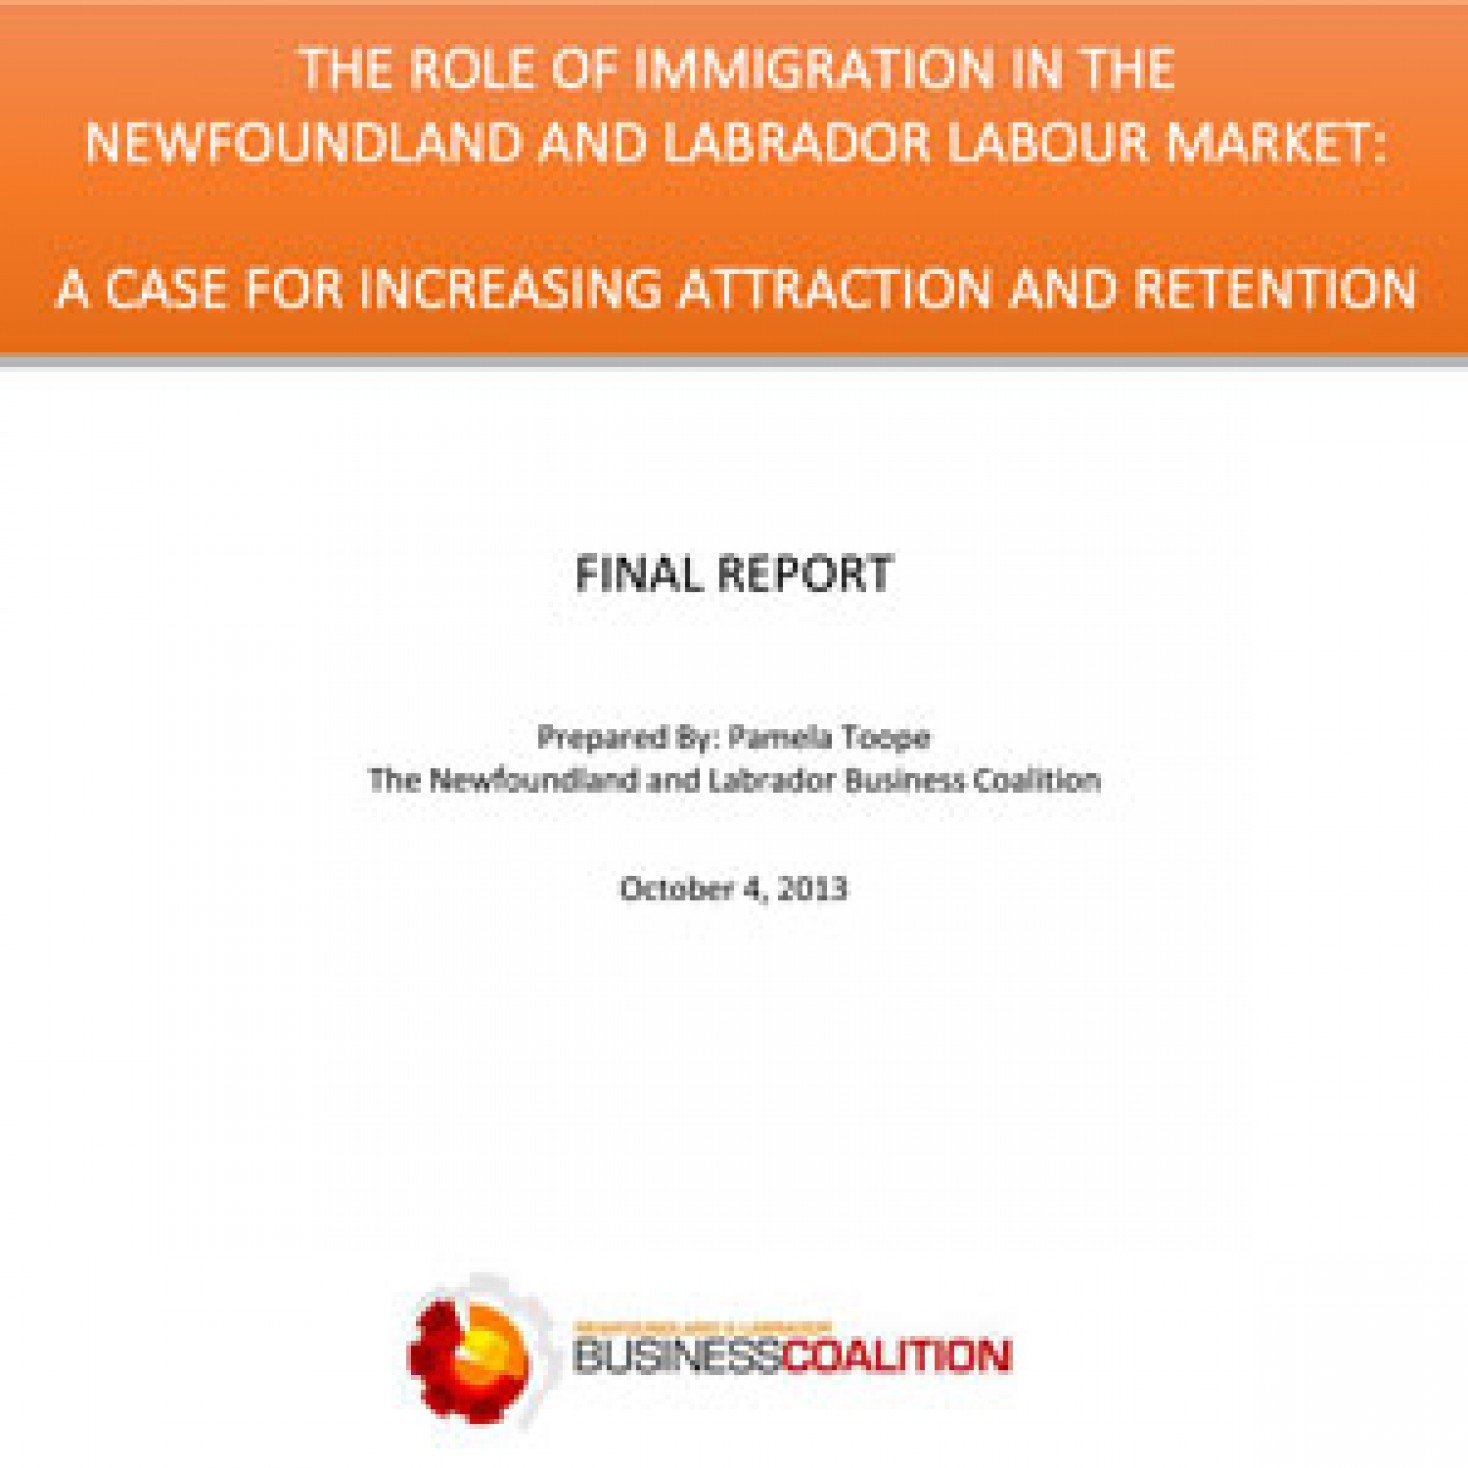 The role of immigration in the newfoundland and labrador labour market: a case for increasing attraction and retention